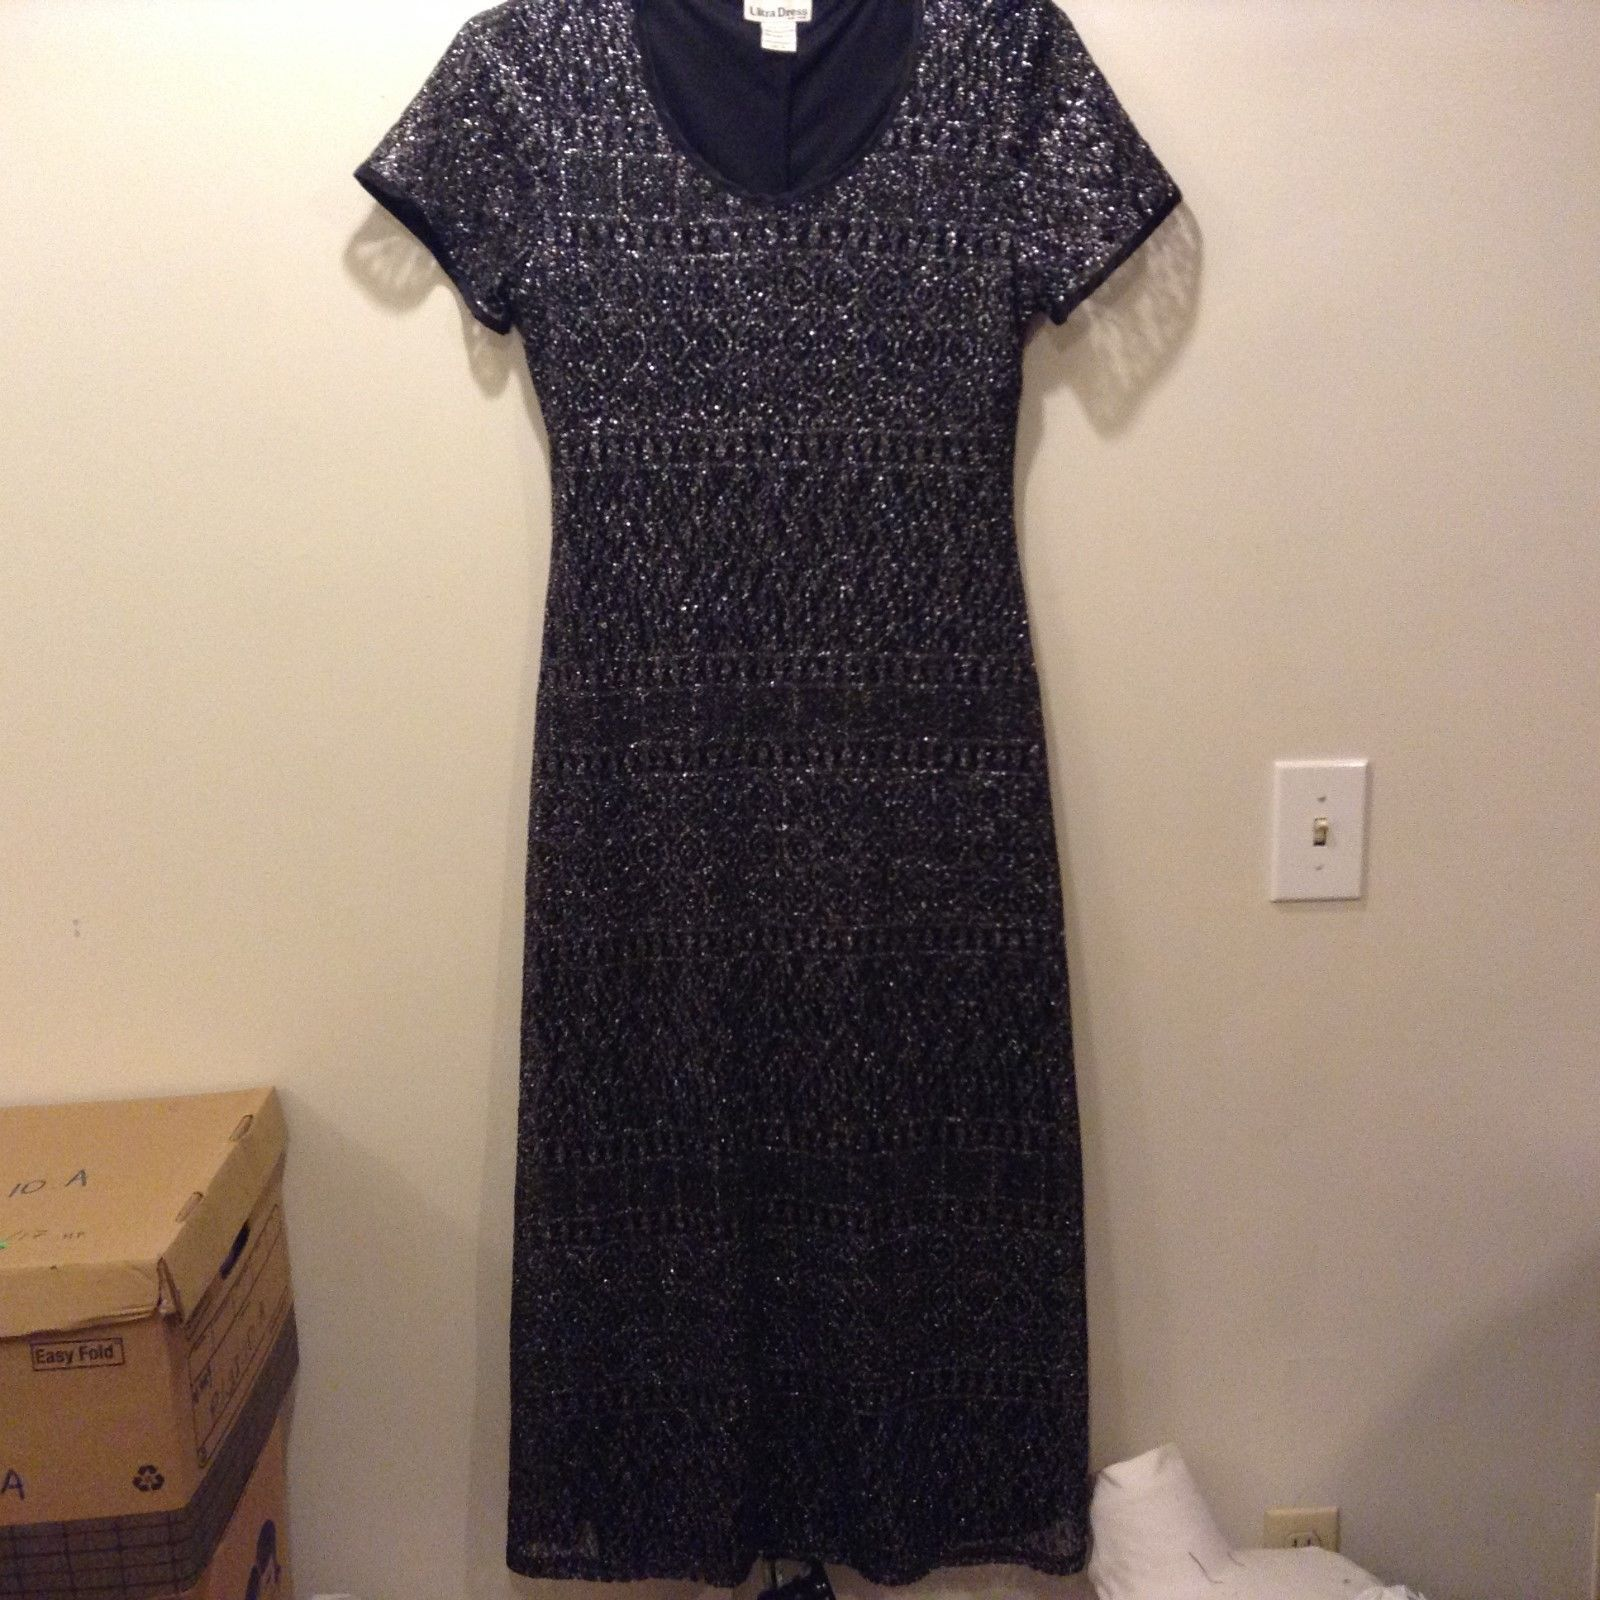 Ultra Dress New York Occasional Long Black Dress Sz 14